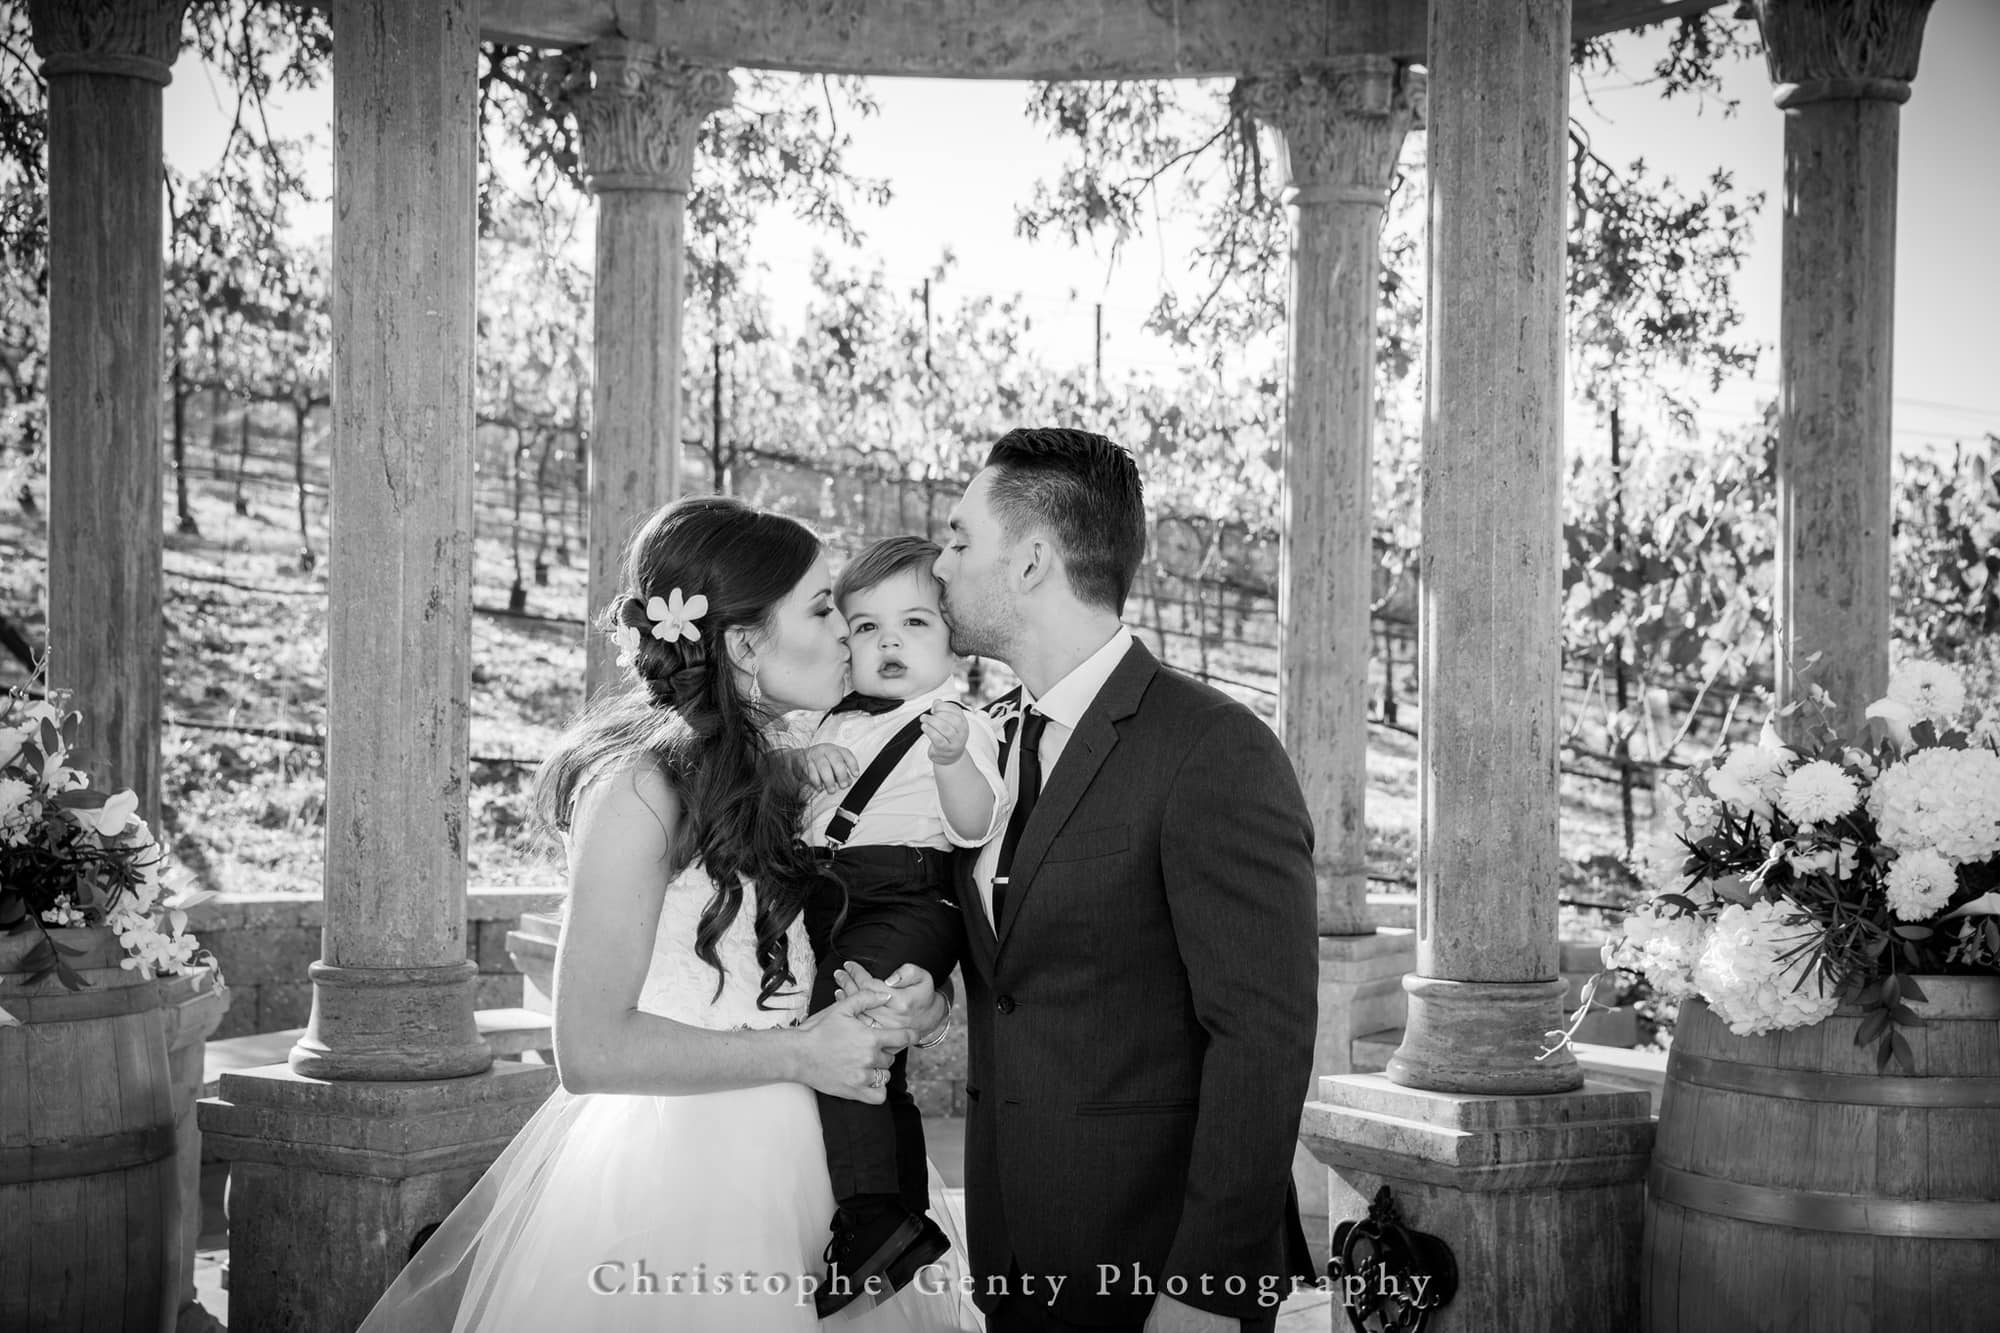 WeddingWedding Photography at The Meritage Inn & Spa, Napa CA